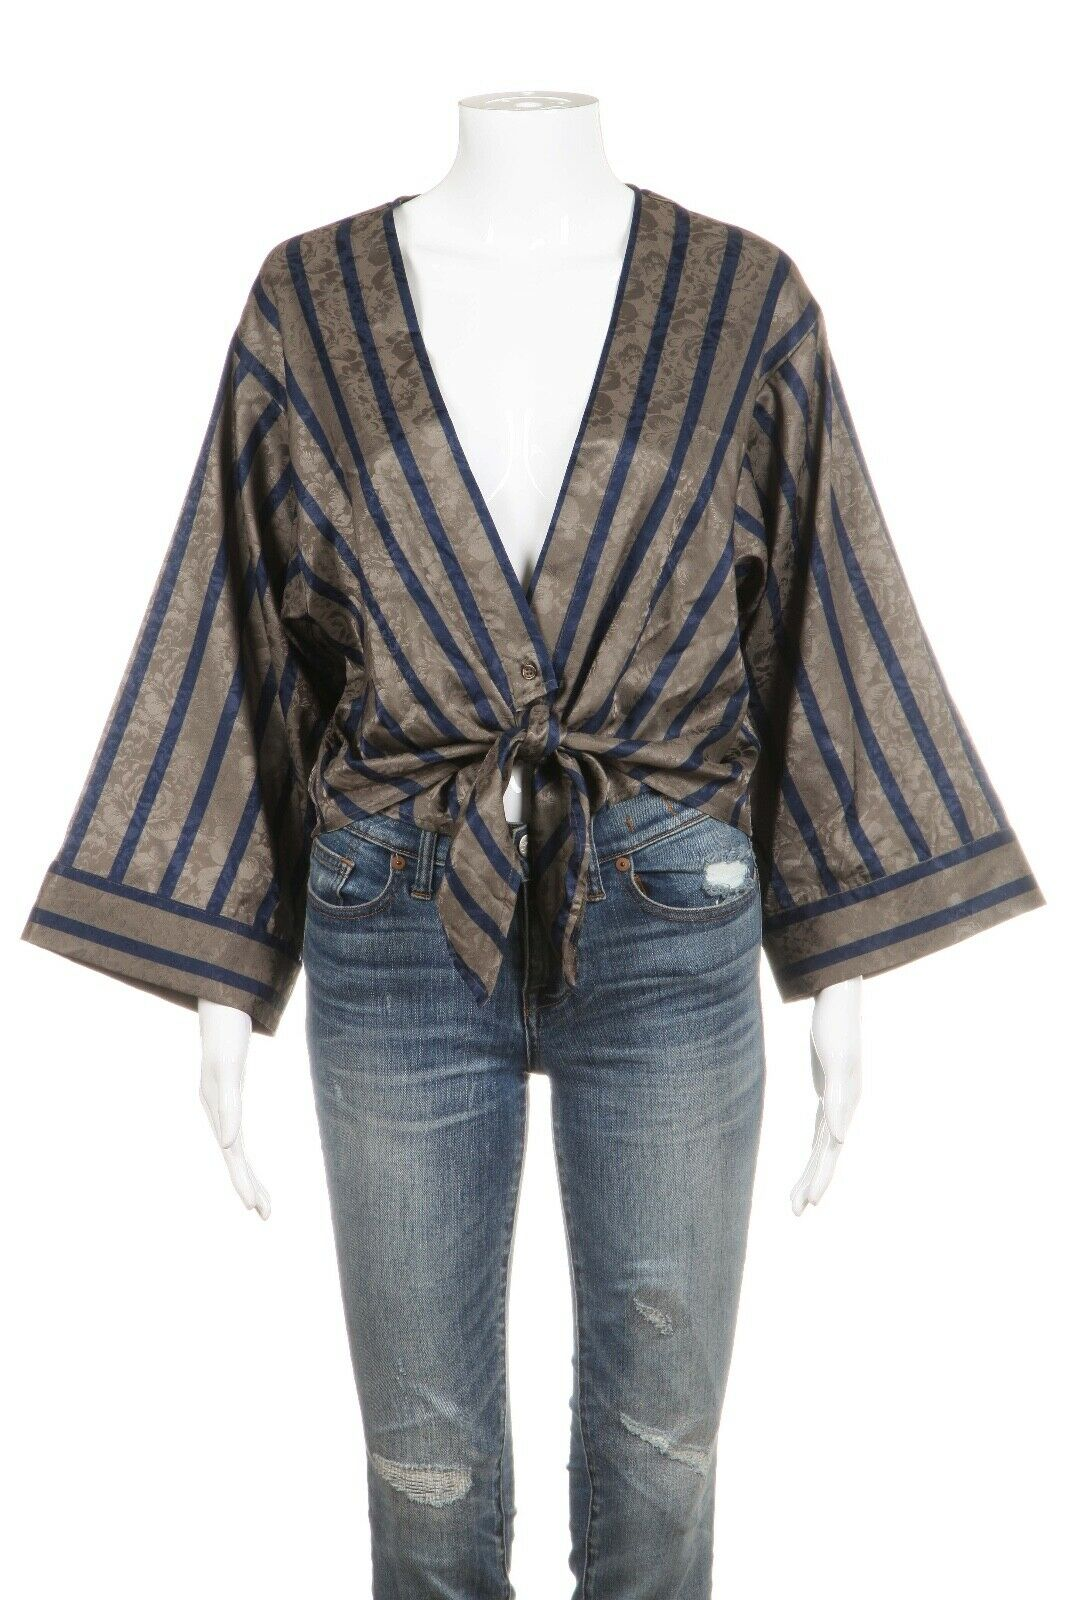 SAM & LAVI Tie Cropped Striped Kimono Blouse Size XS